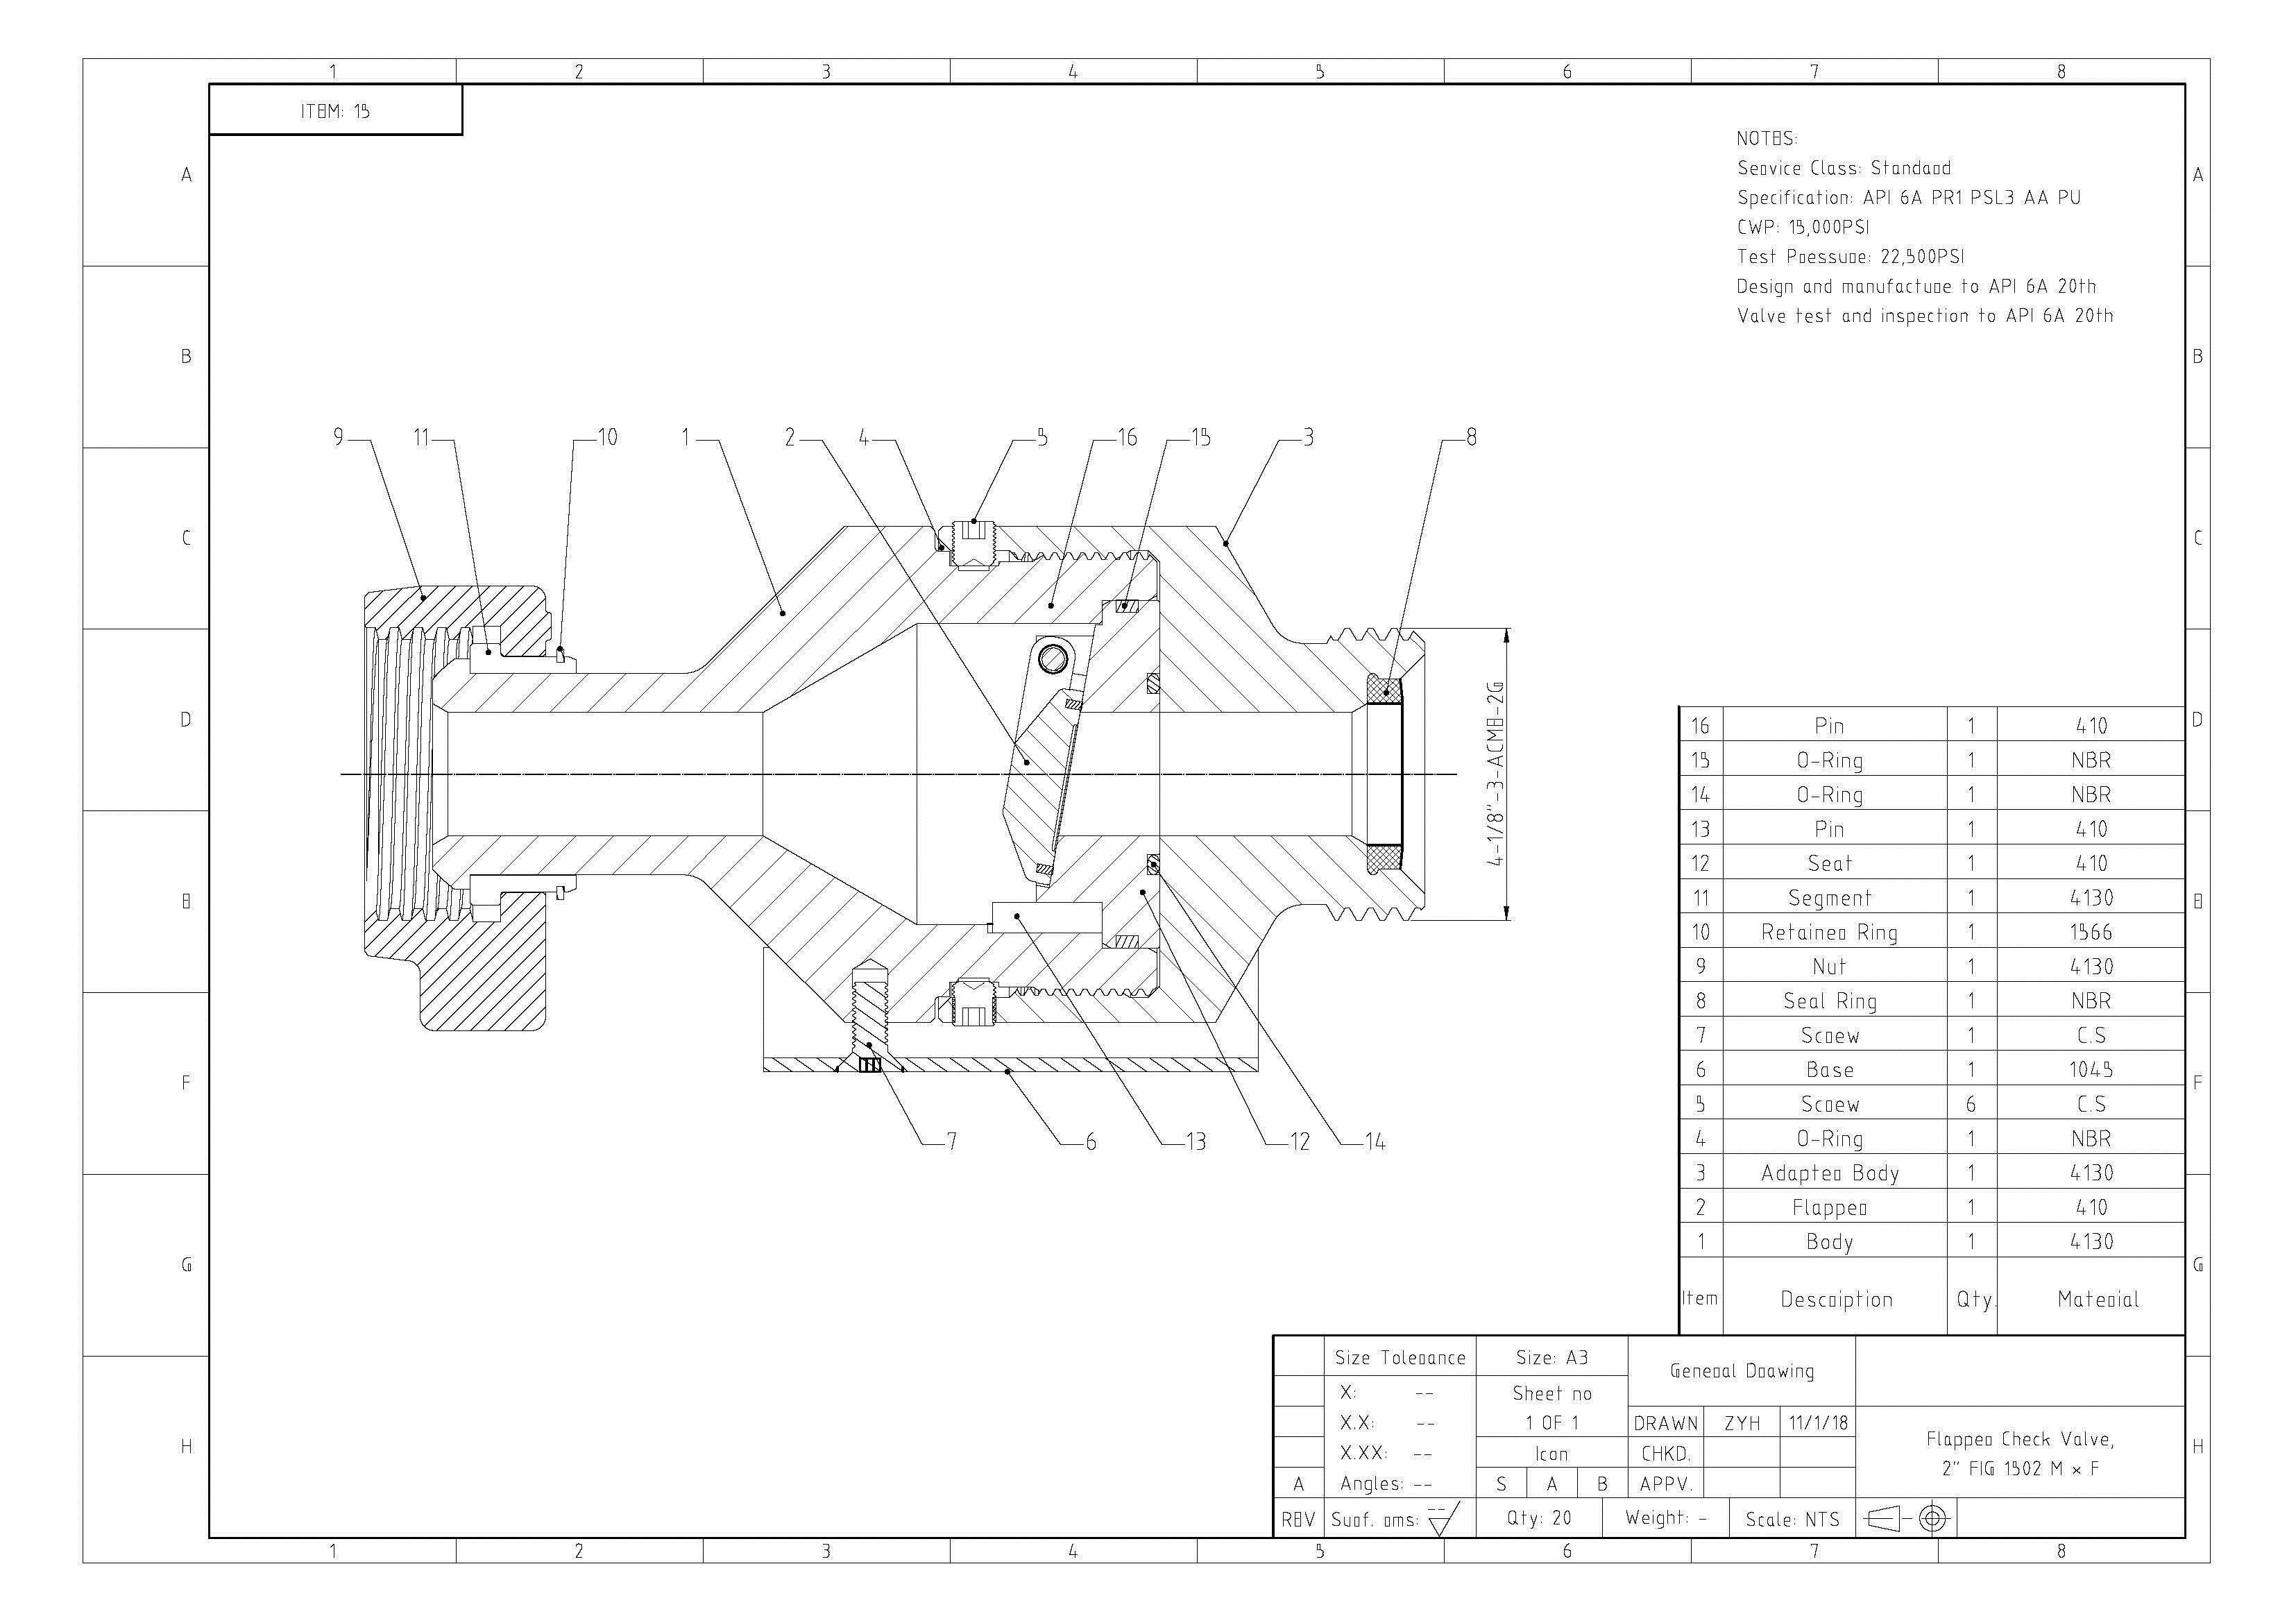 Flapper Check Valve Drawing